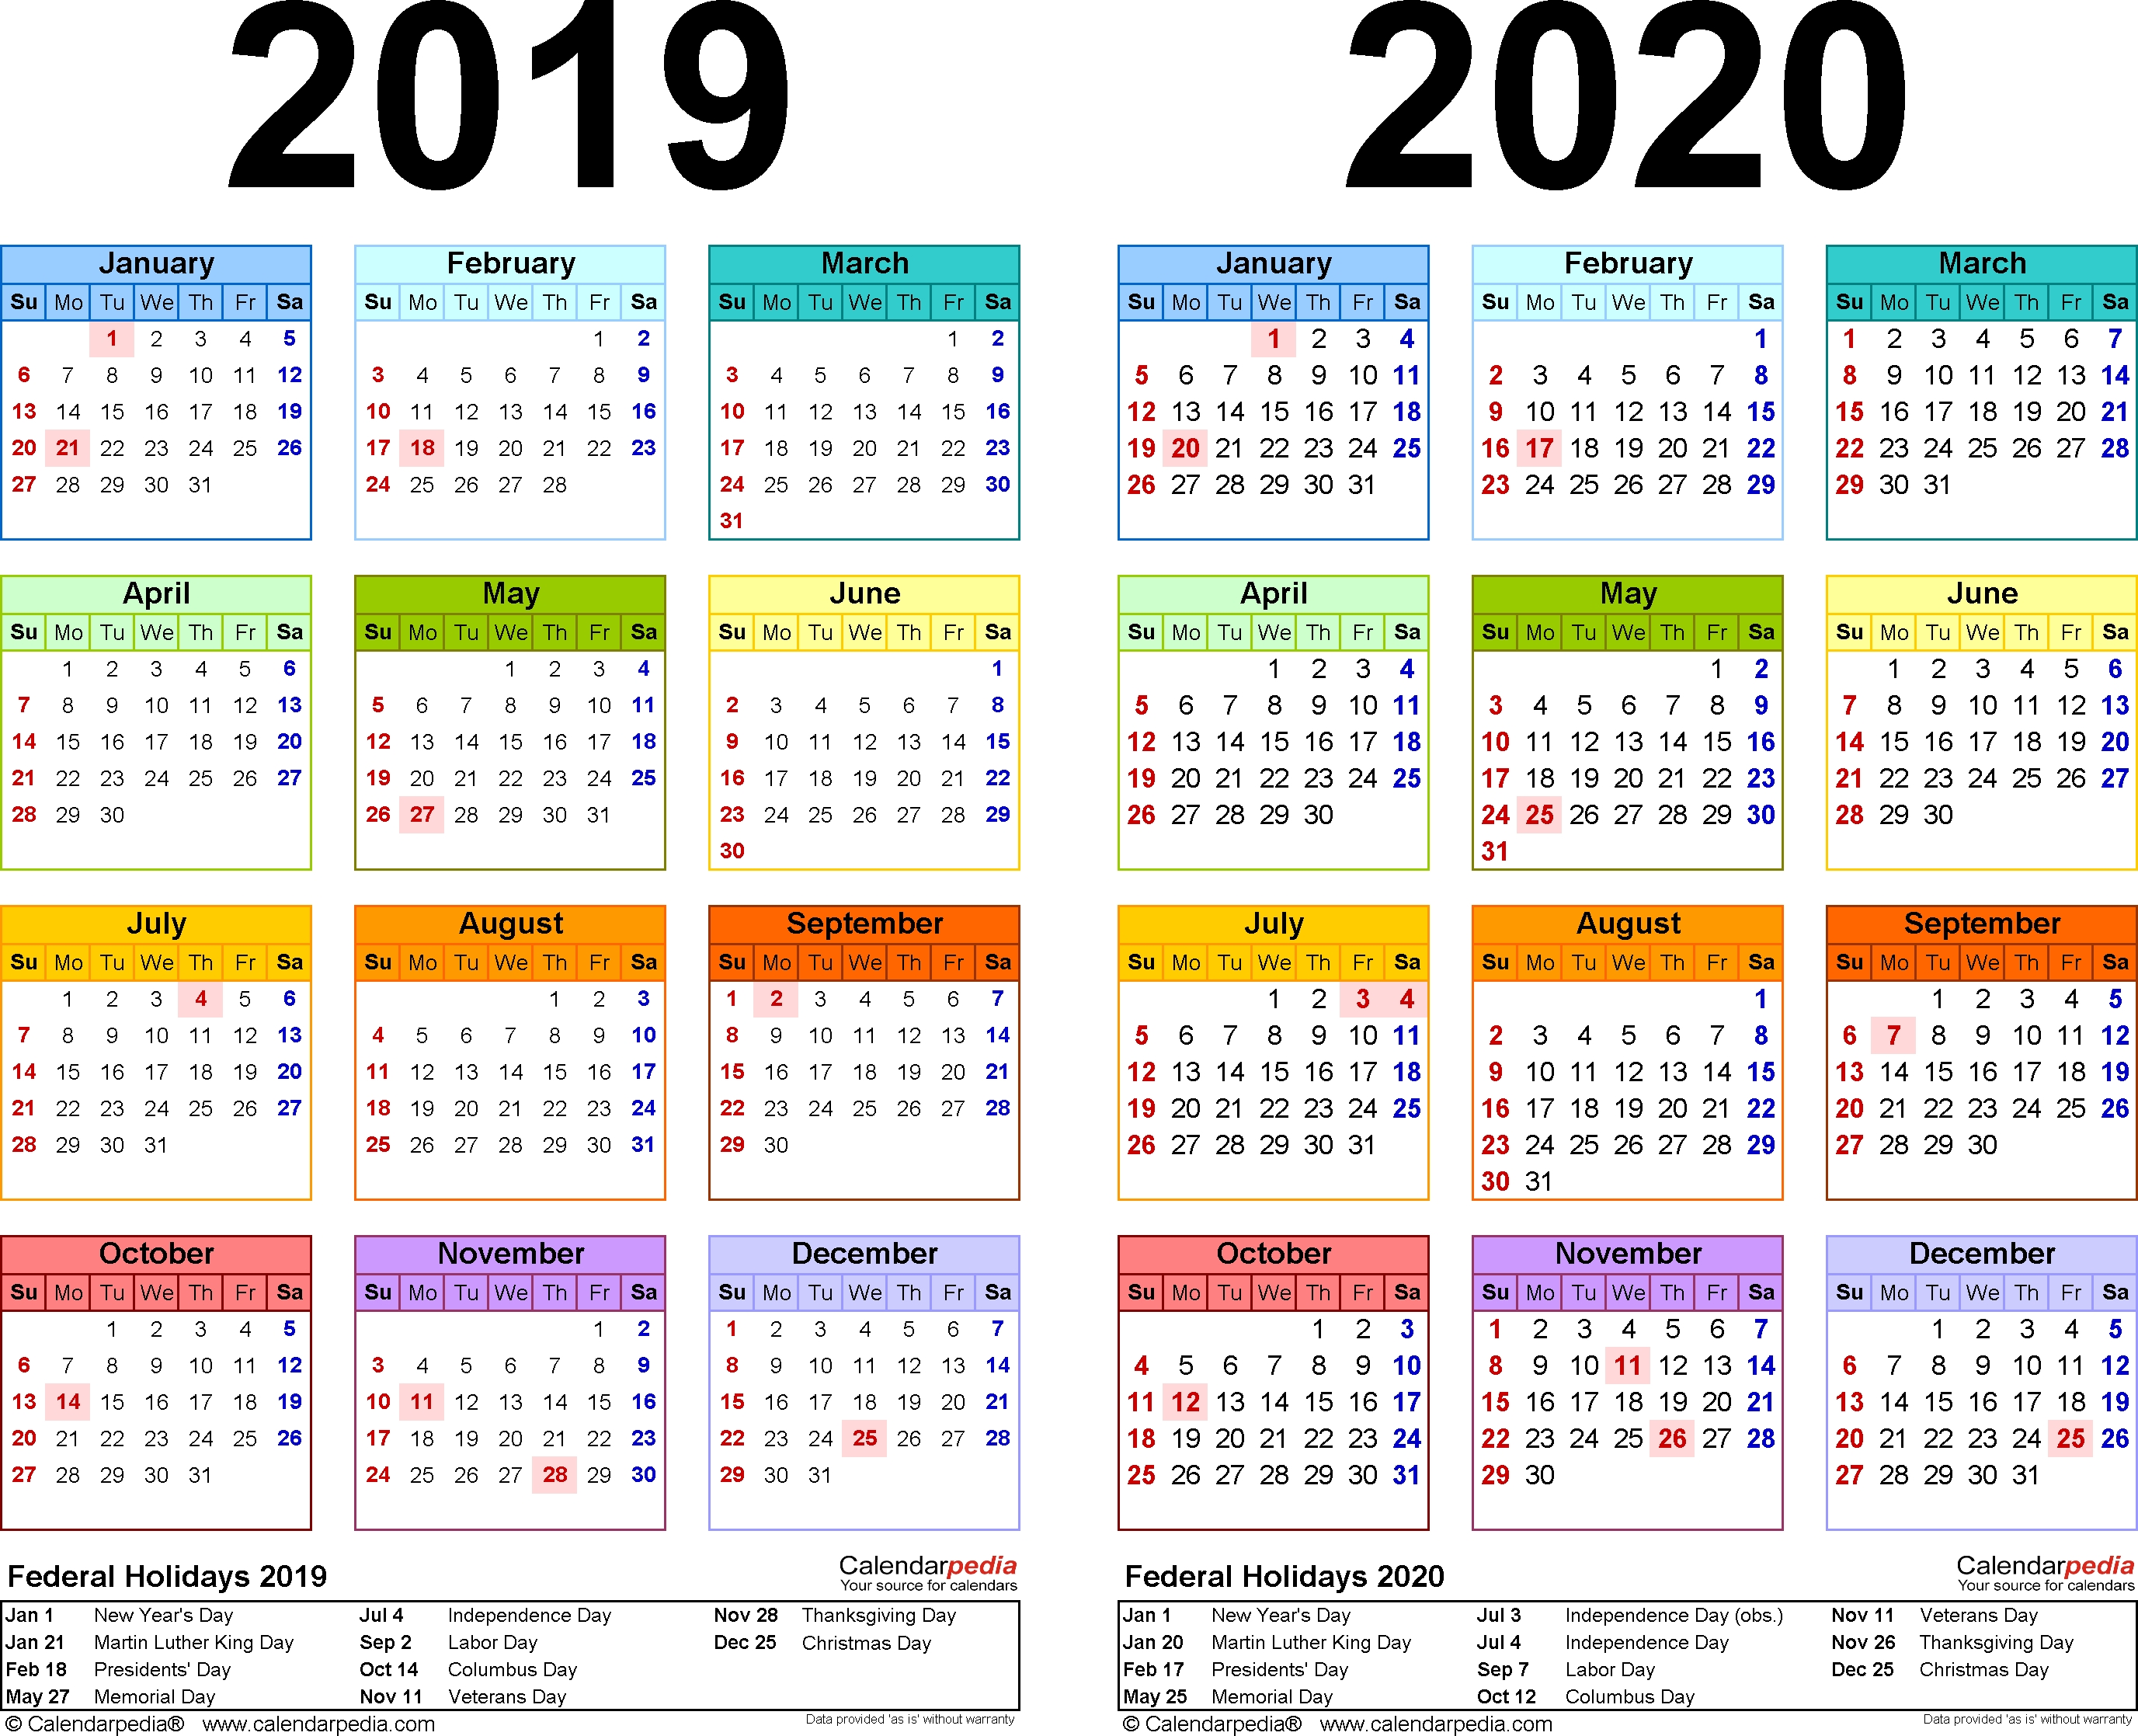 2019-2020 Calendar - Free Printable Two-Year Excel Calendars pertaining to Calendar With All The Years